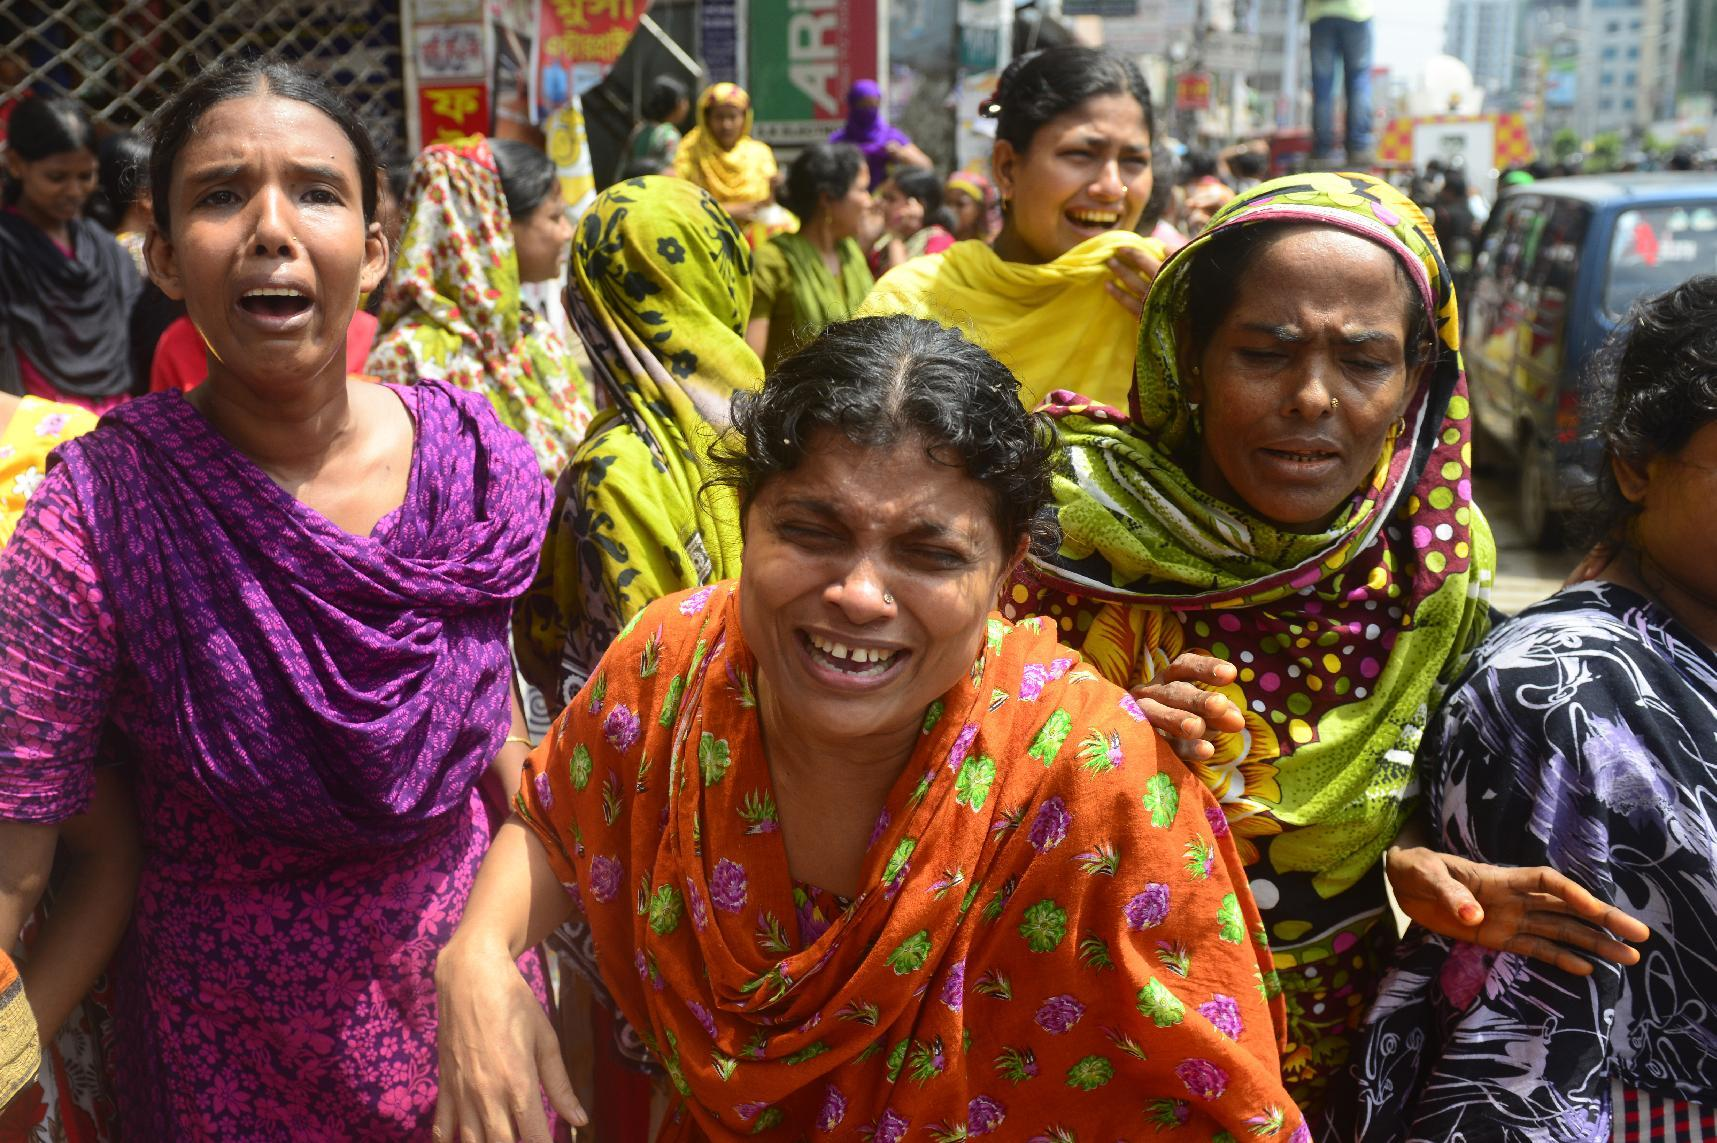 Bangladesh garment workers react after police stormed a textile factory in Dhaka on August 7, 2014 and evicted employees striking over pay (AFP Photo/Munir Uz Zaman)